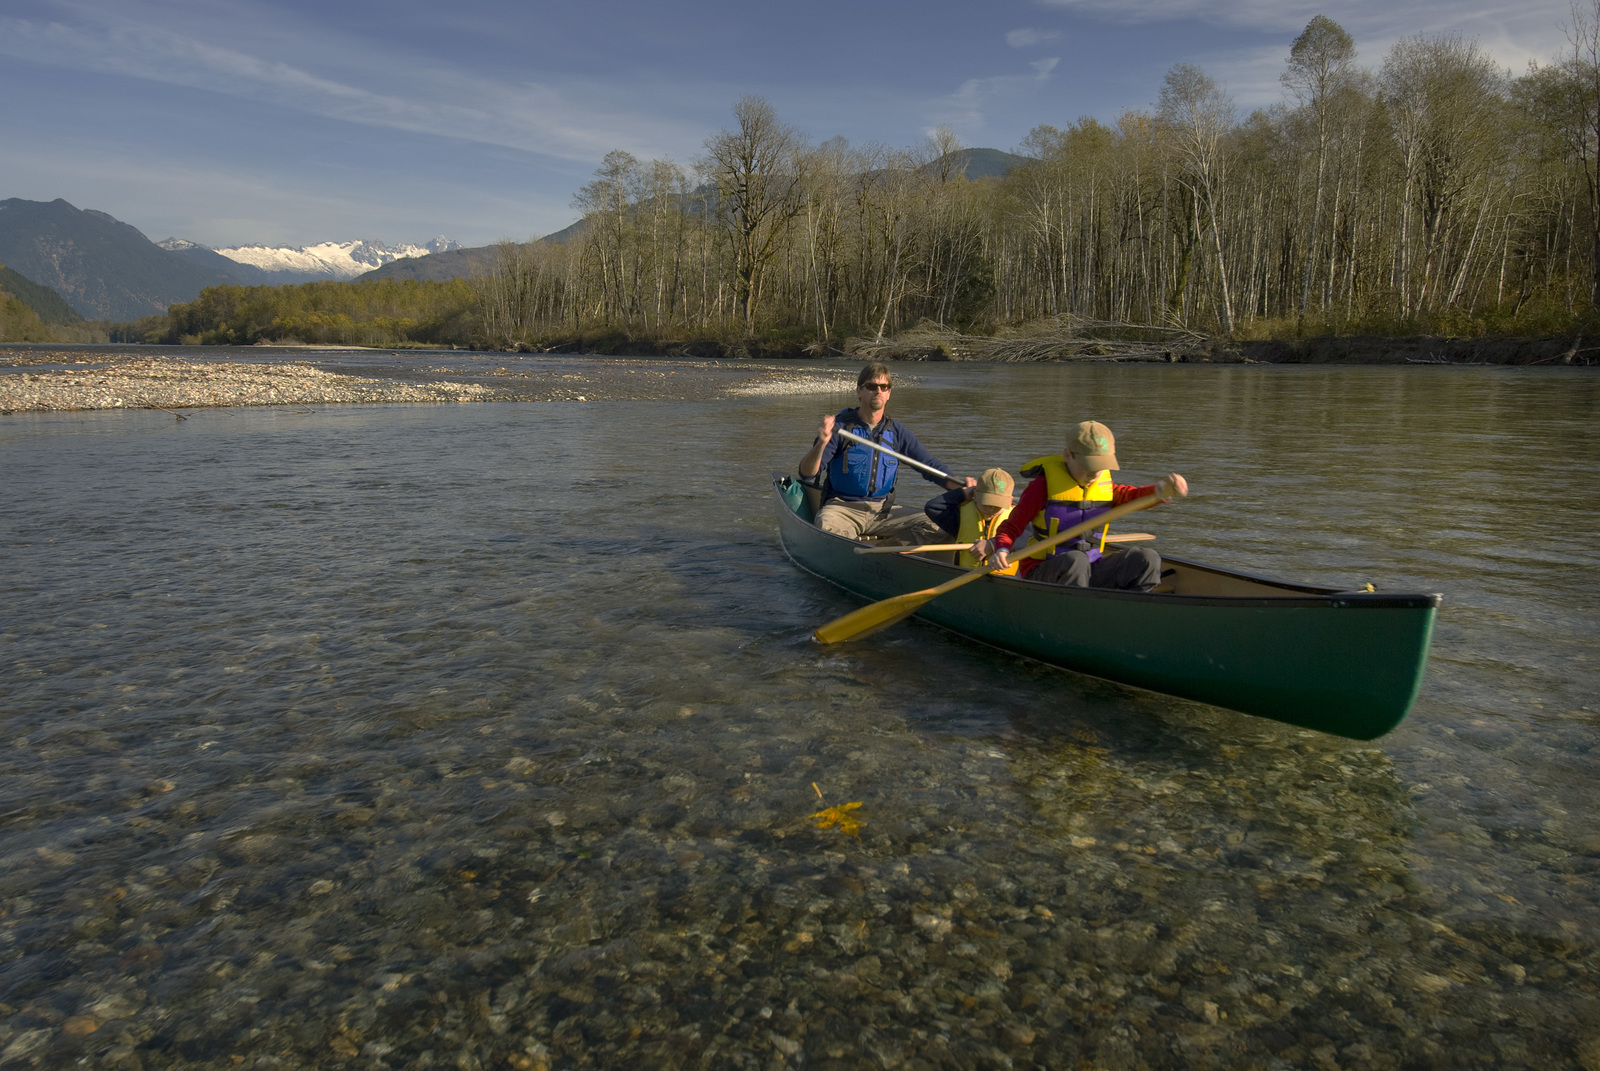 Bob Carey canoeing the upper Skagit River of Washington with his two sons. The Nature Conservancy has been working to preserve the mighty Skagit River for more than 30 years. Photo © Bridget Besaw.